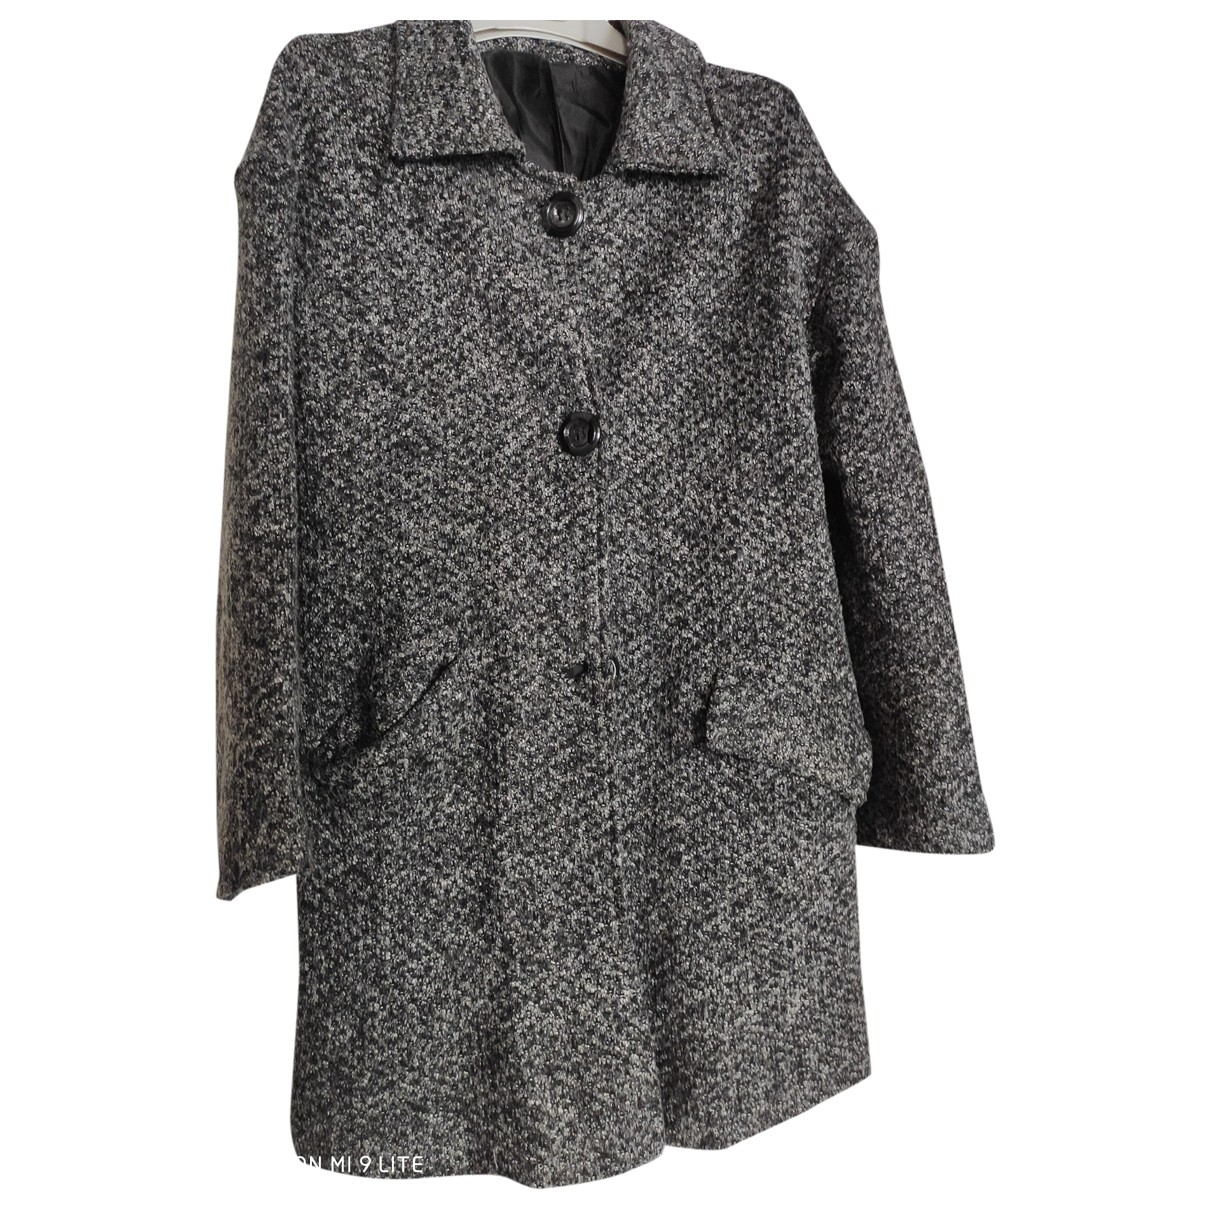 Non Signé / Unsigned \N Grey Cotton coat for Women S International